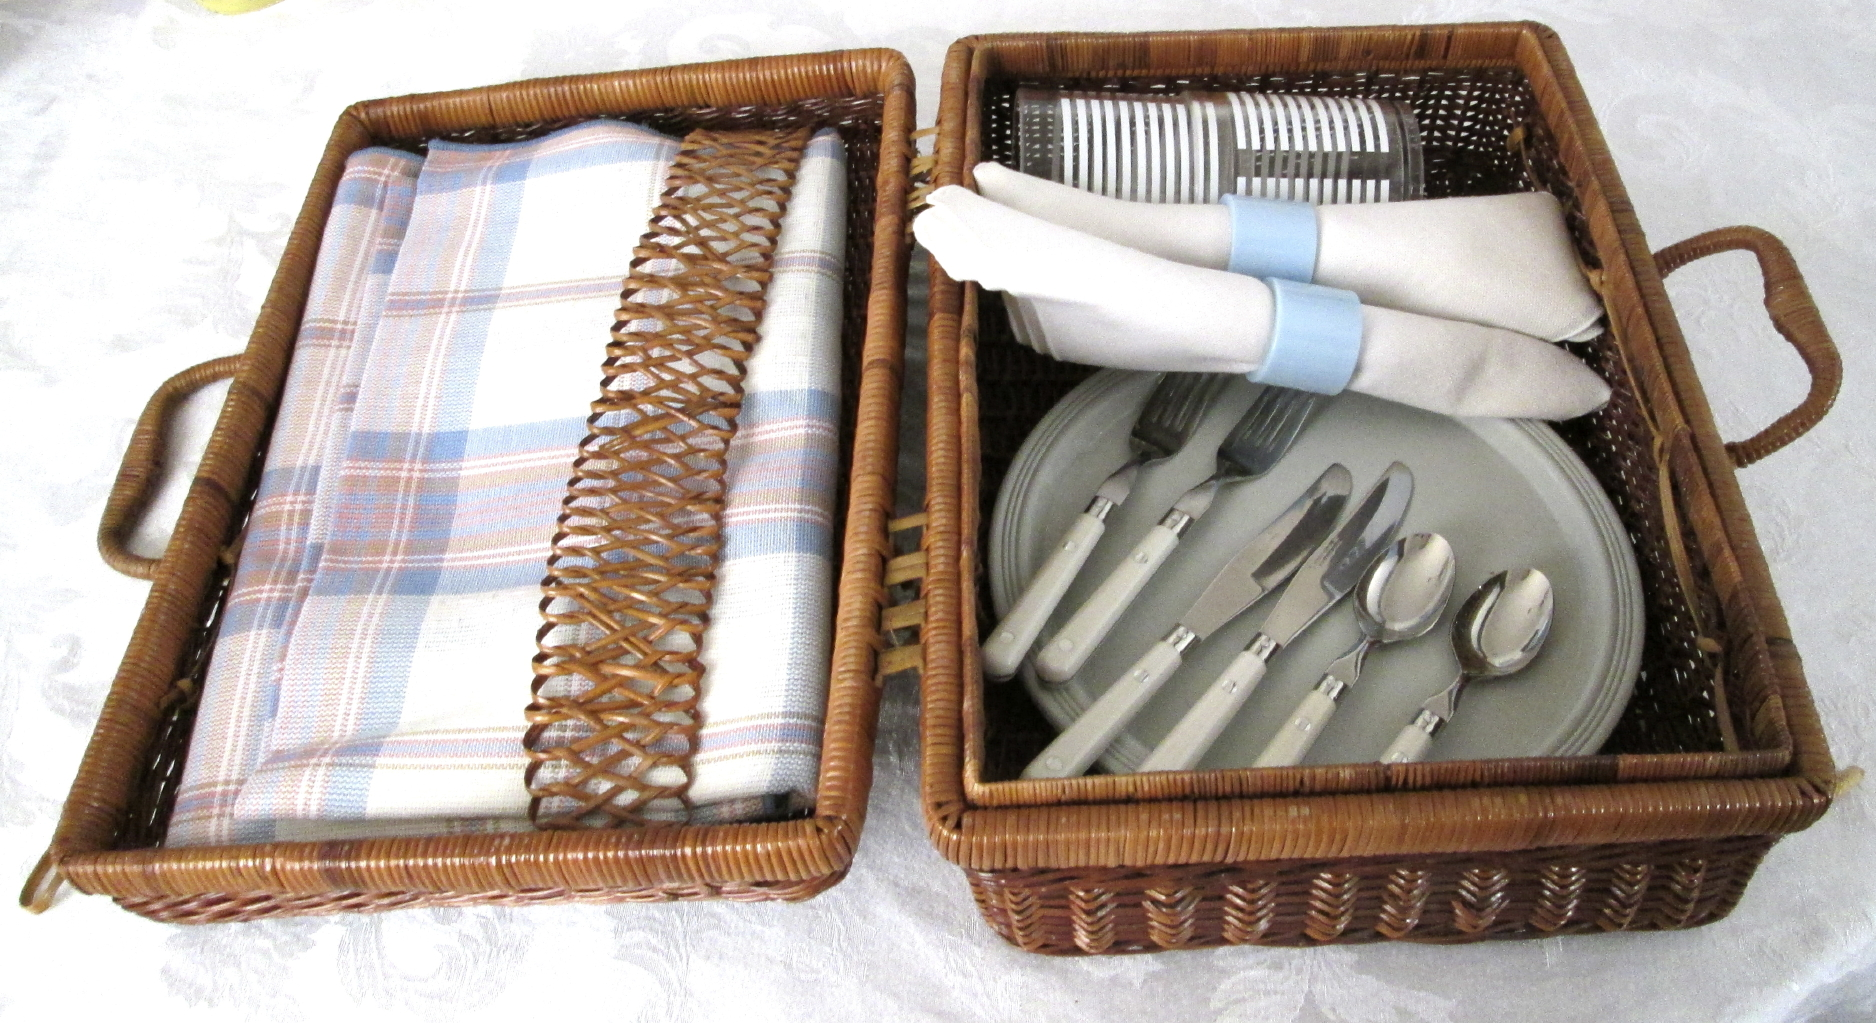 Picnic Ideas- How to Plan the Perfect Picnic - Remember Plates, Silverware, and Napkins